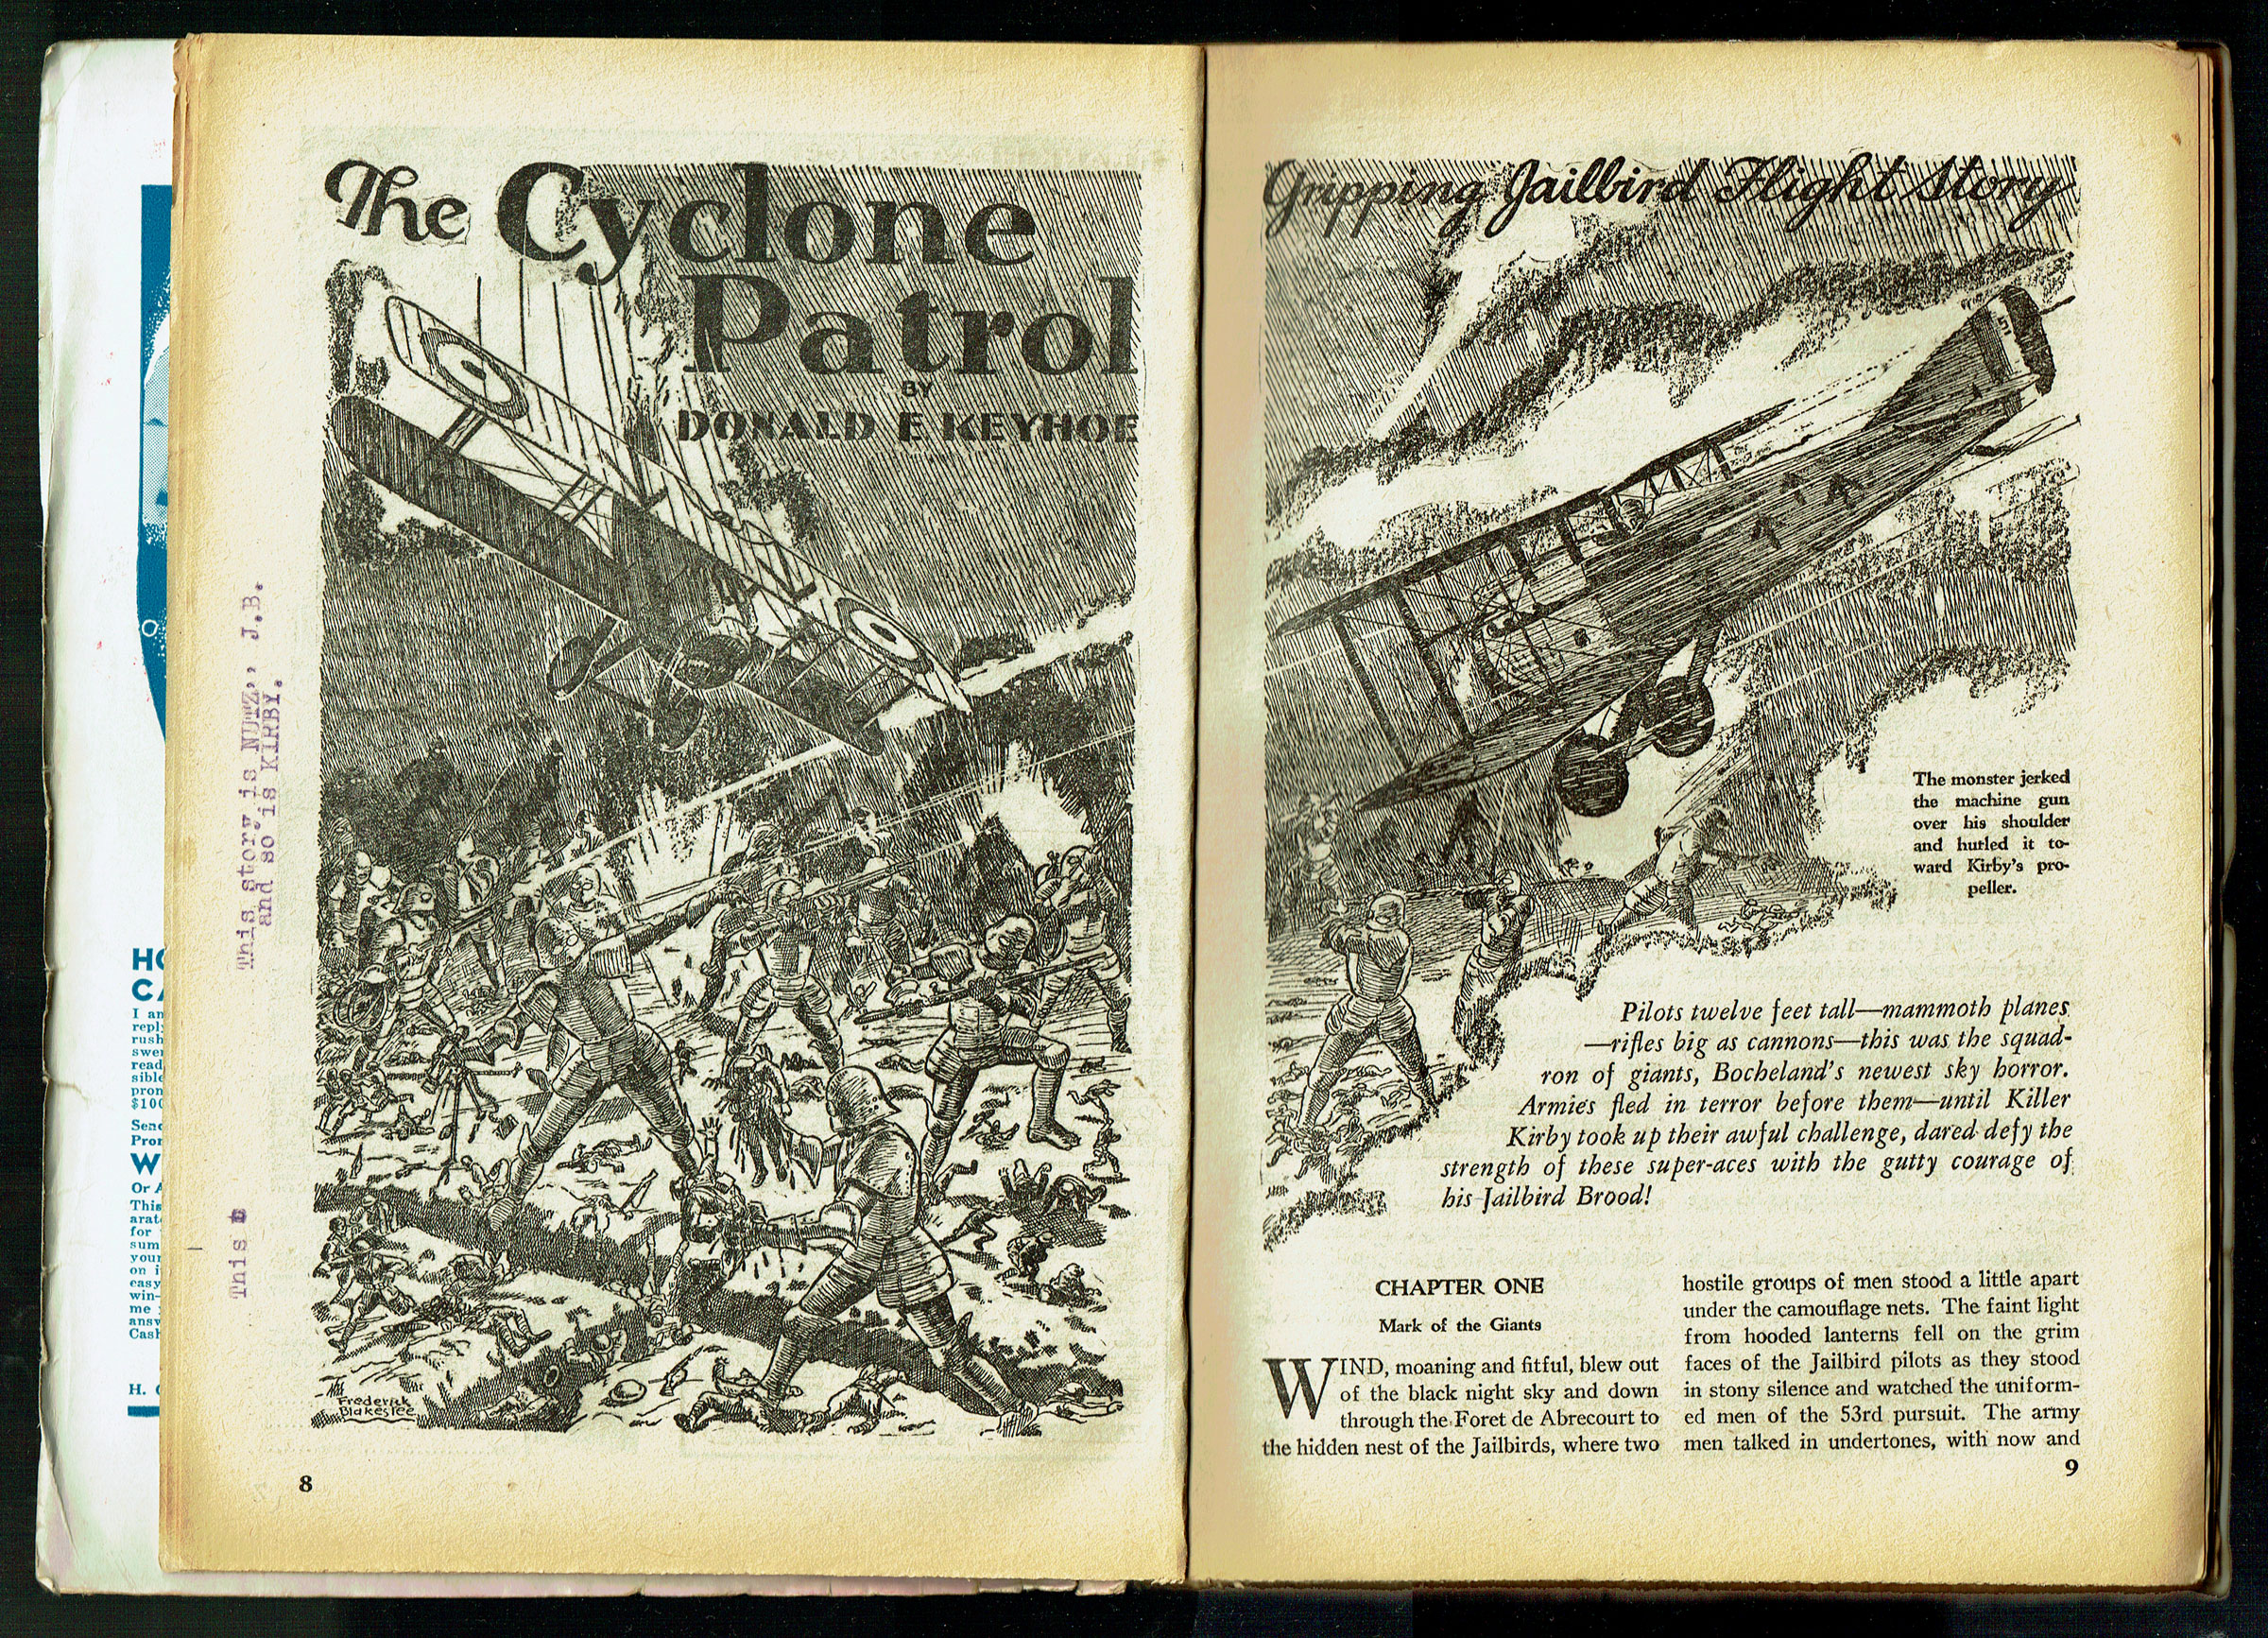 The Cyclone Patrol